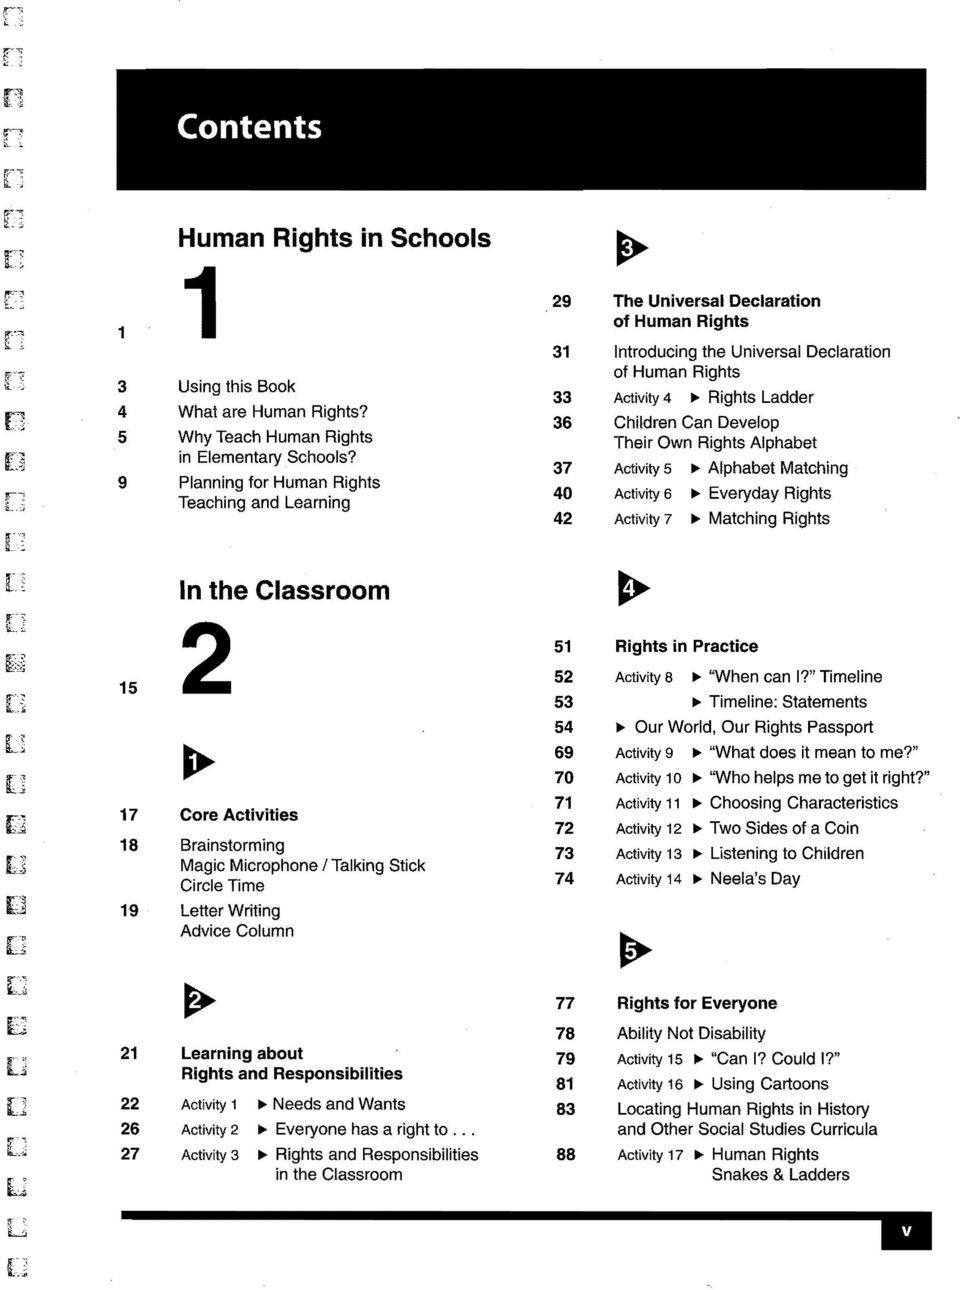 Develop Their Own Rights Alphabet 37 Activity 5 ~ Alphabet Matching 40 Activity 6 ~ Everyday Rights 42 Activity 7 ~ Matching Rights 15 17 18 19 In the Classroom 2 ~ Core Activities Brainstorming